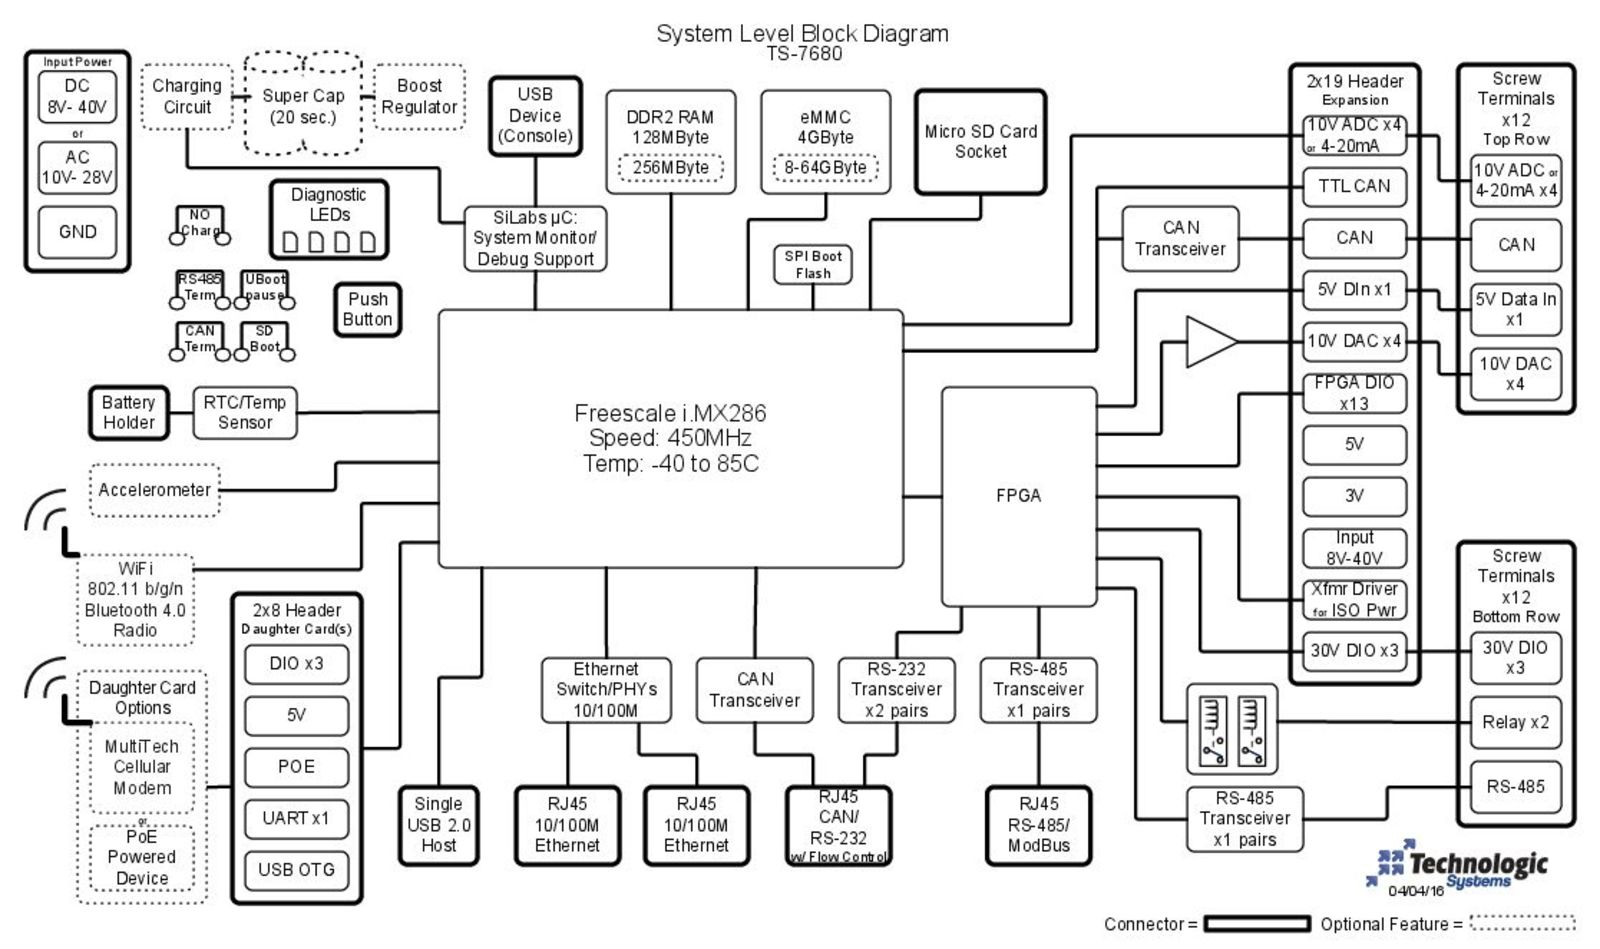 TS-7680 Block Diagram